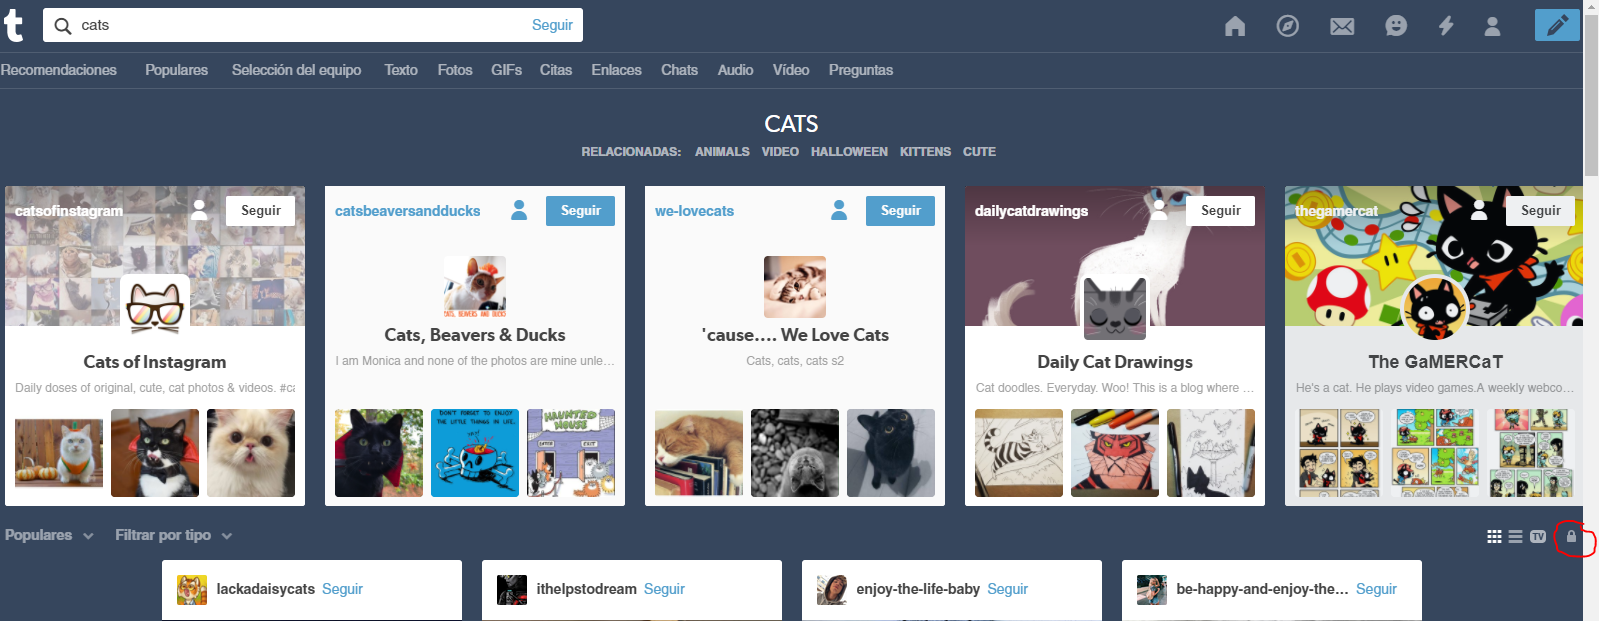 How To Disable The Safe Mode Option On Tumblr Quora